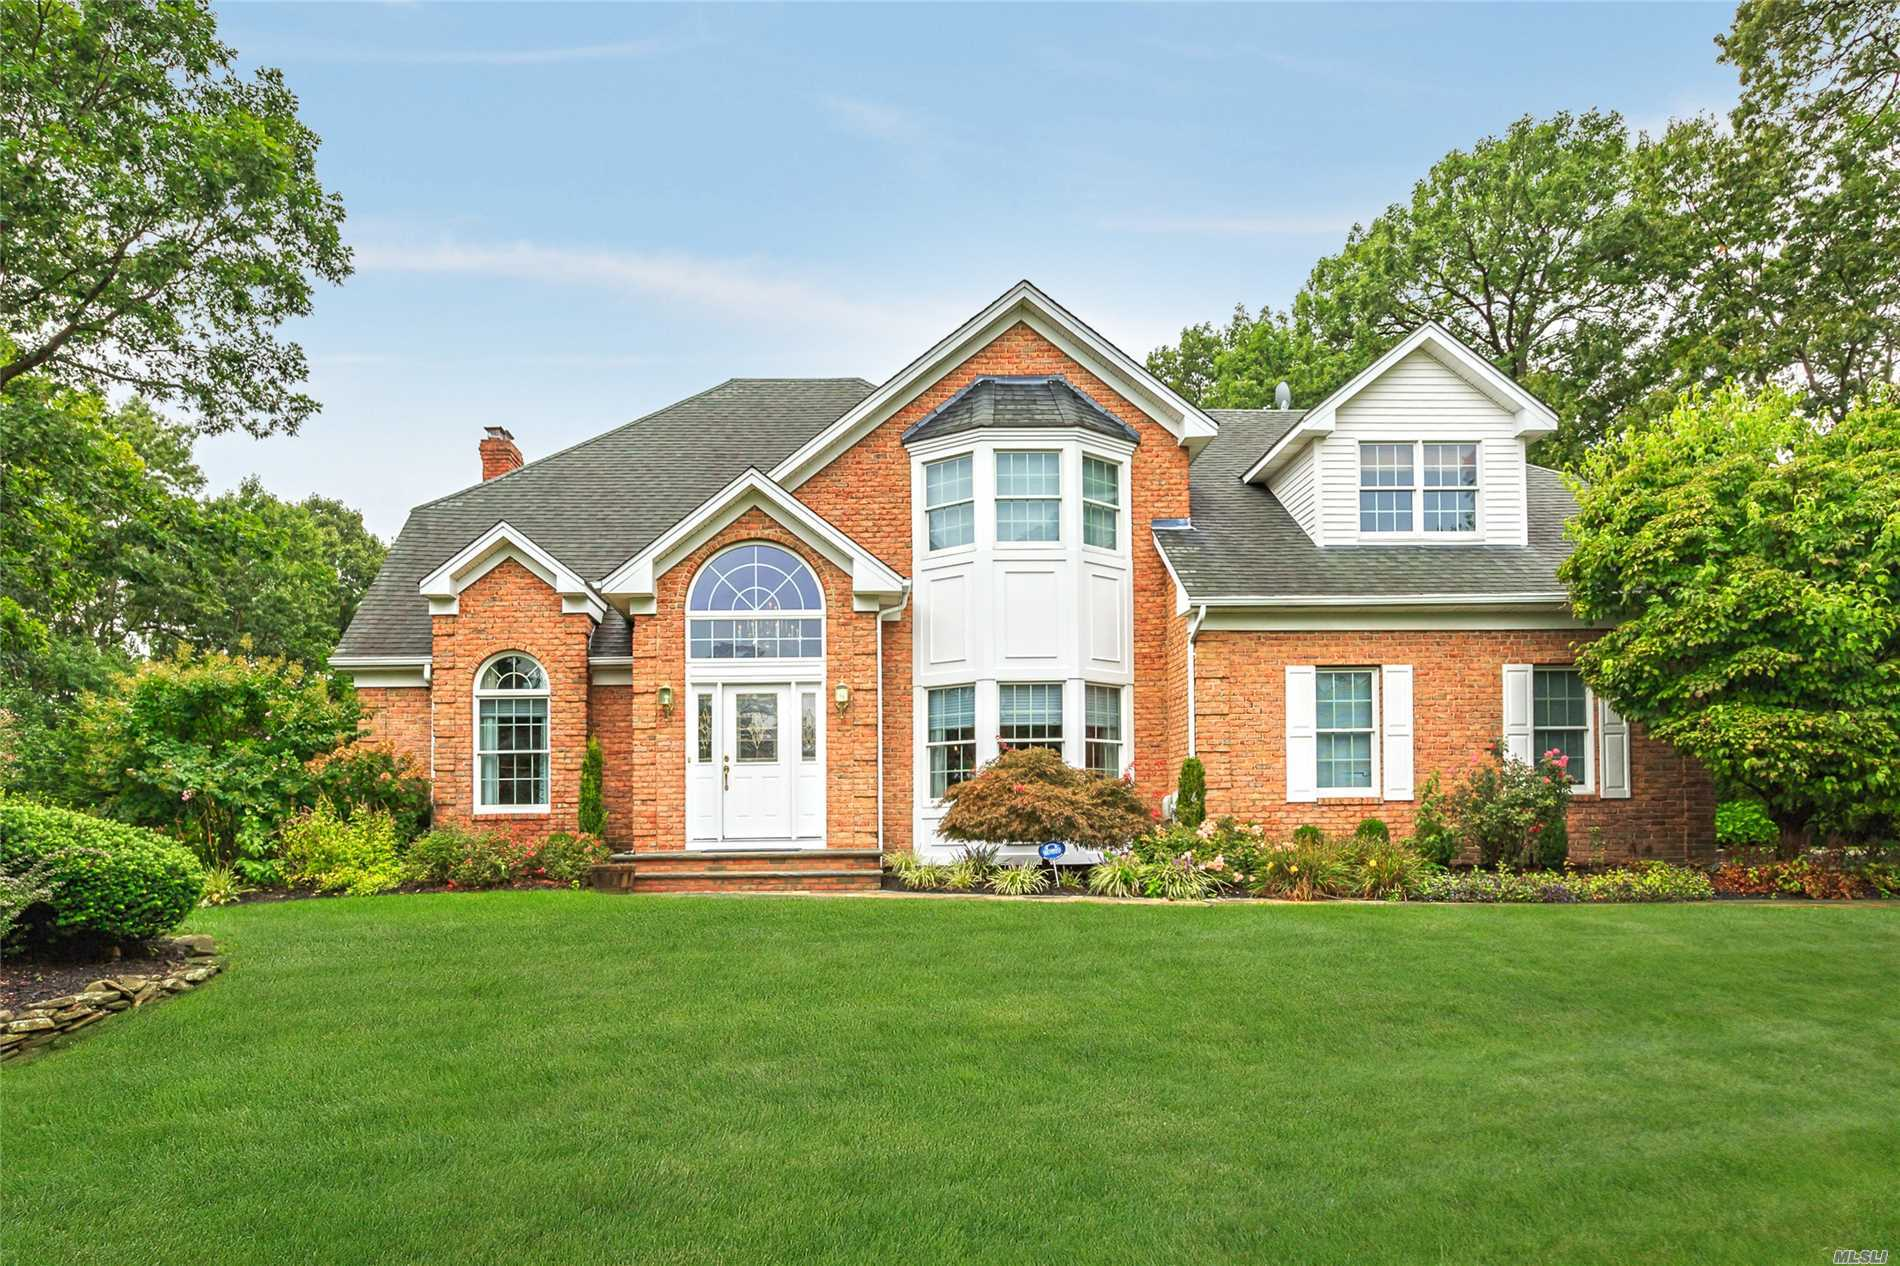 Gorgeous Renovated Colonial In Prestigious Milemore Development Of Fort Salonga. Open Concept Entertaining Areas Coupled With A Traditional Flair Give This 4/5 Bedroom, 3.5 Bath Home A Luxurious Feel. Perfect Entertaining Spaces For Any Time Of Year. Come Take A Private Look Today!